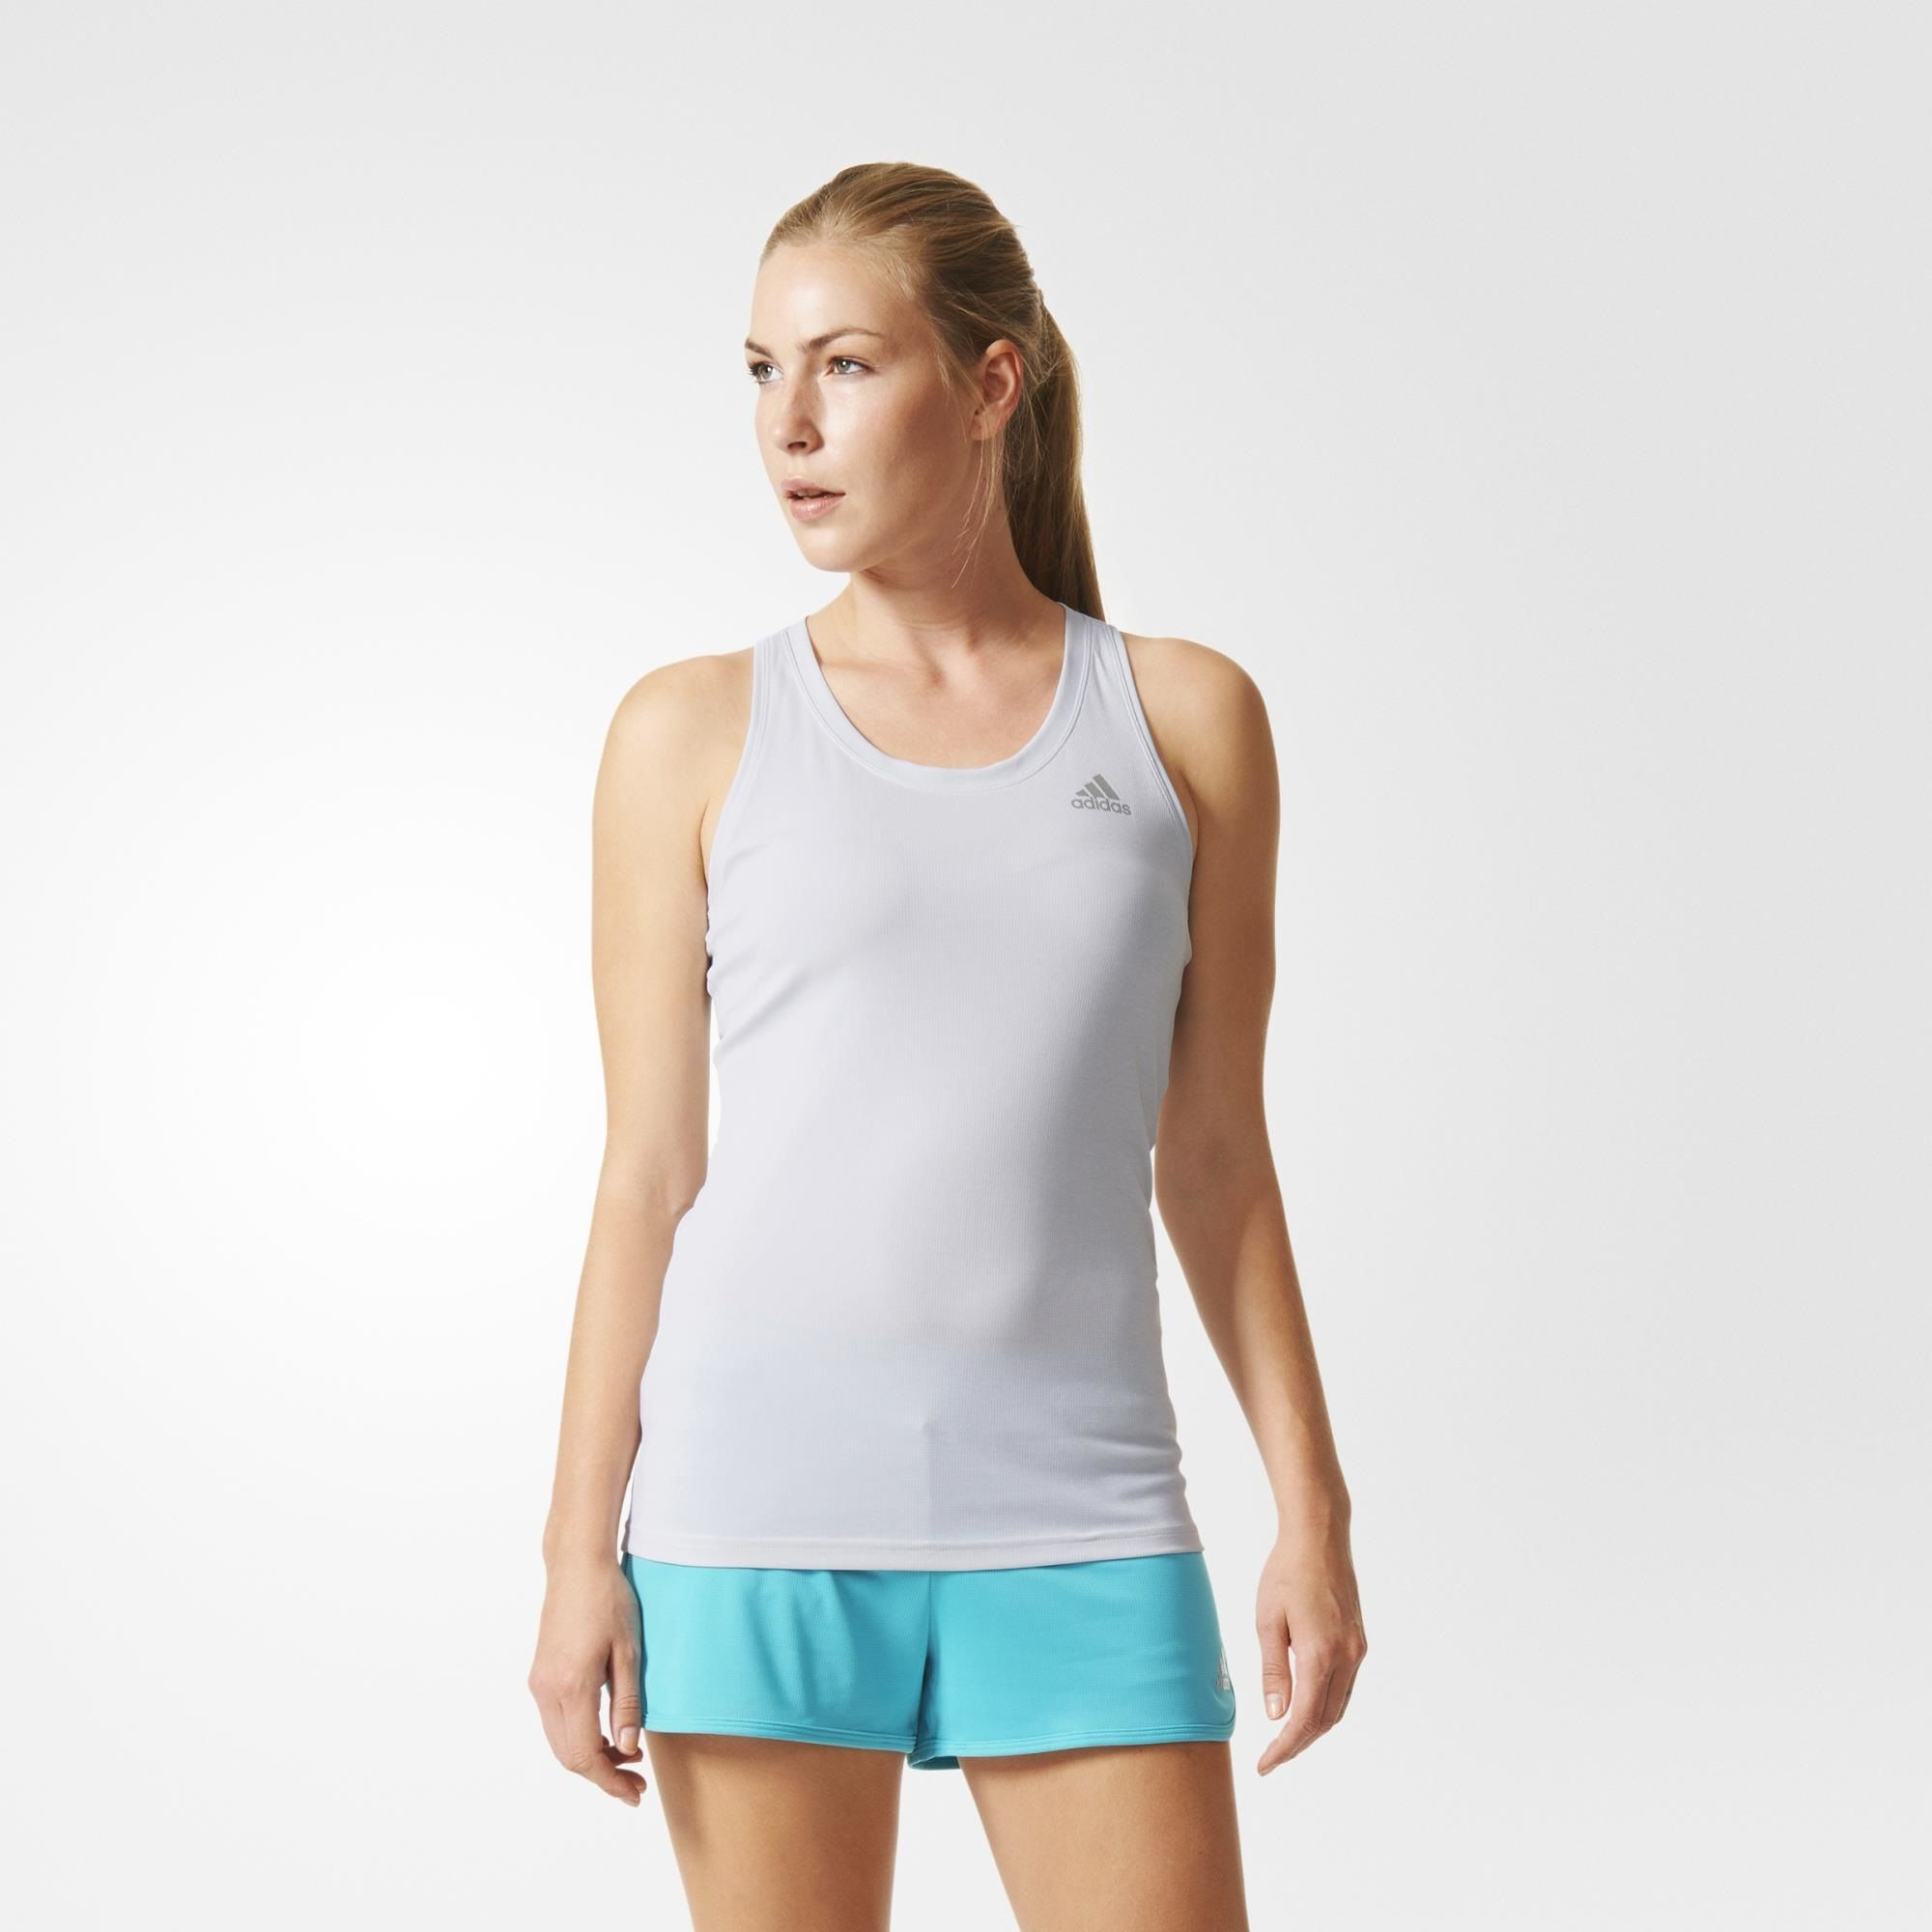 0da2d7e714b08e Shop adidas Women s shirts to stay cool from work-out to sport to street.  Browse adidas Women s tees